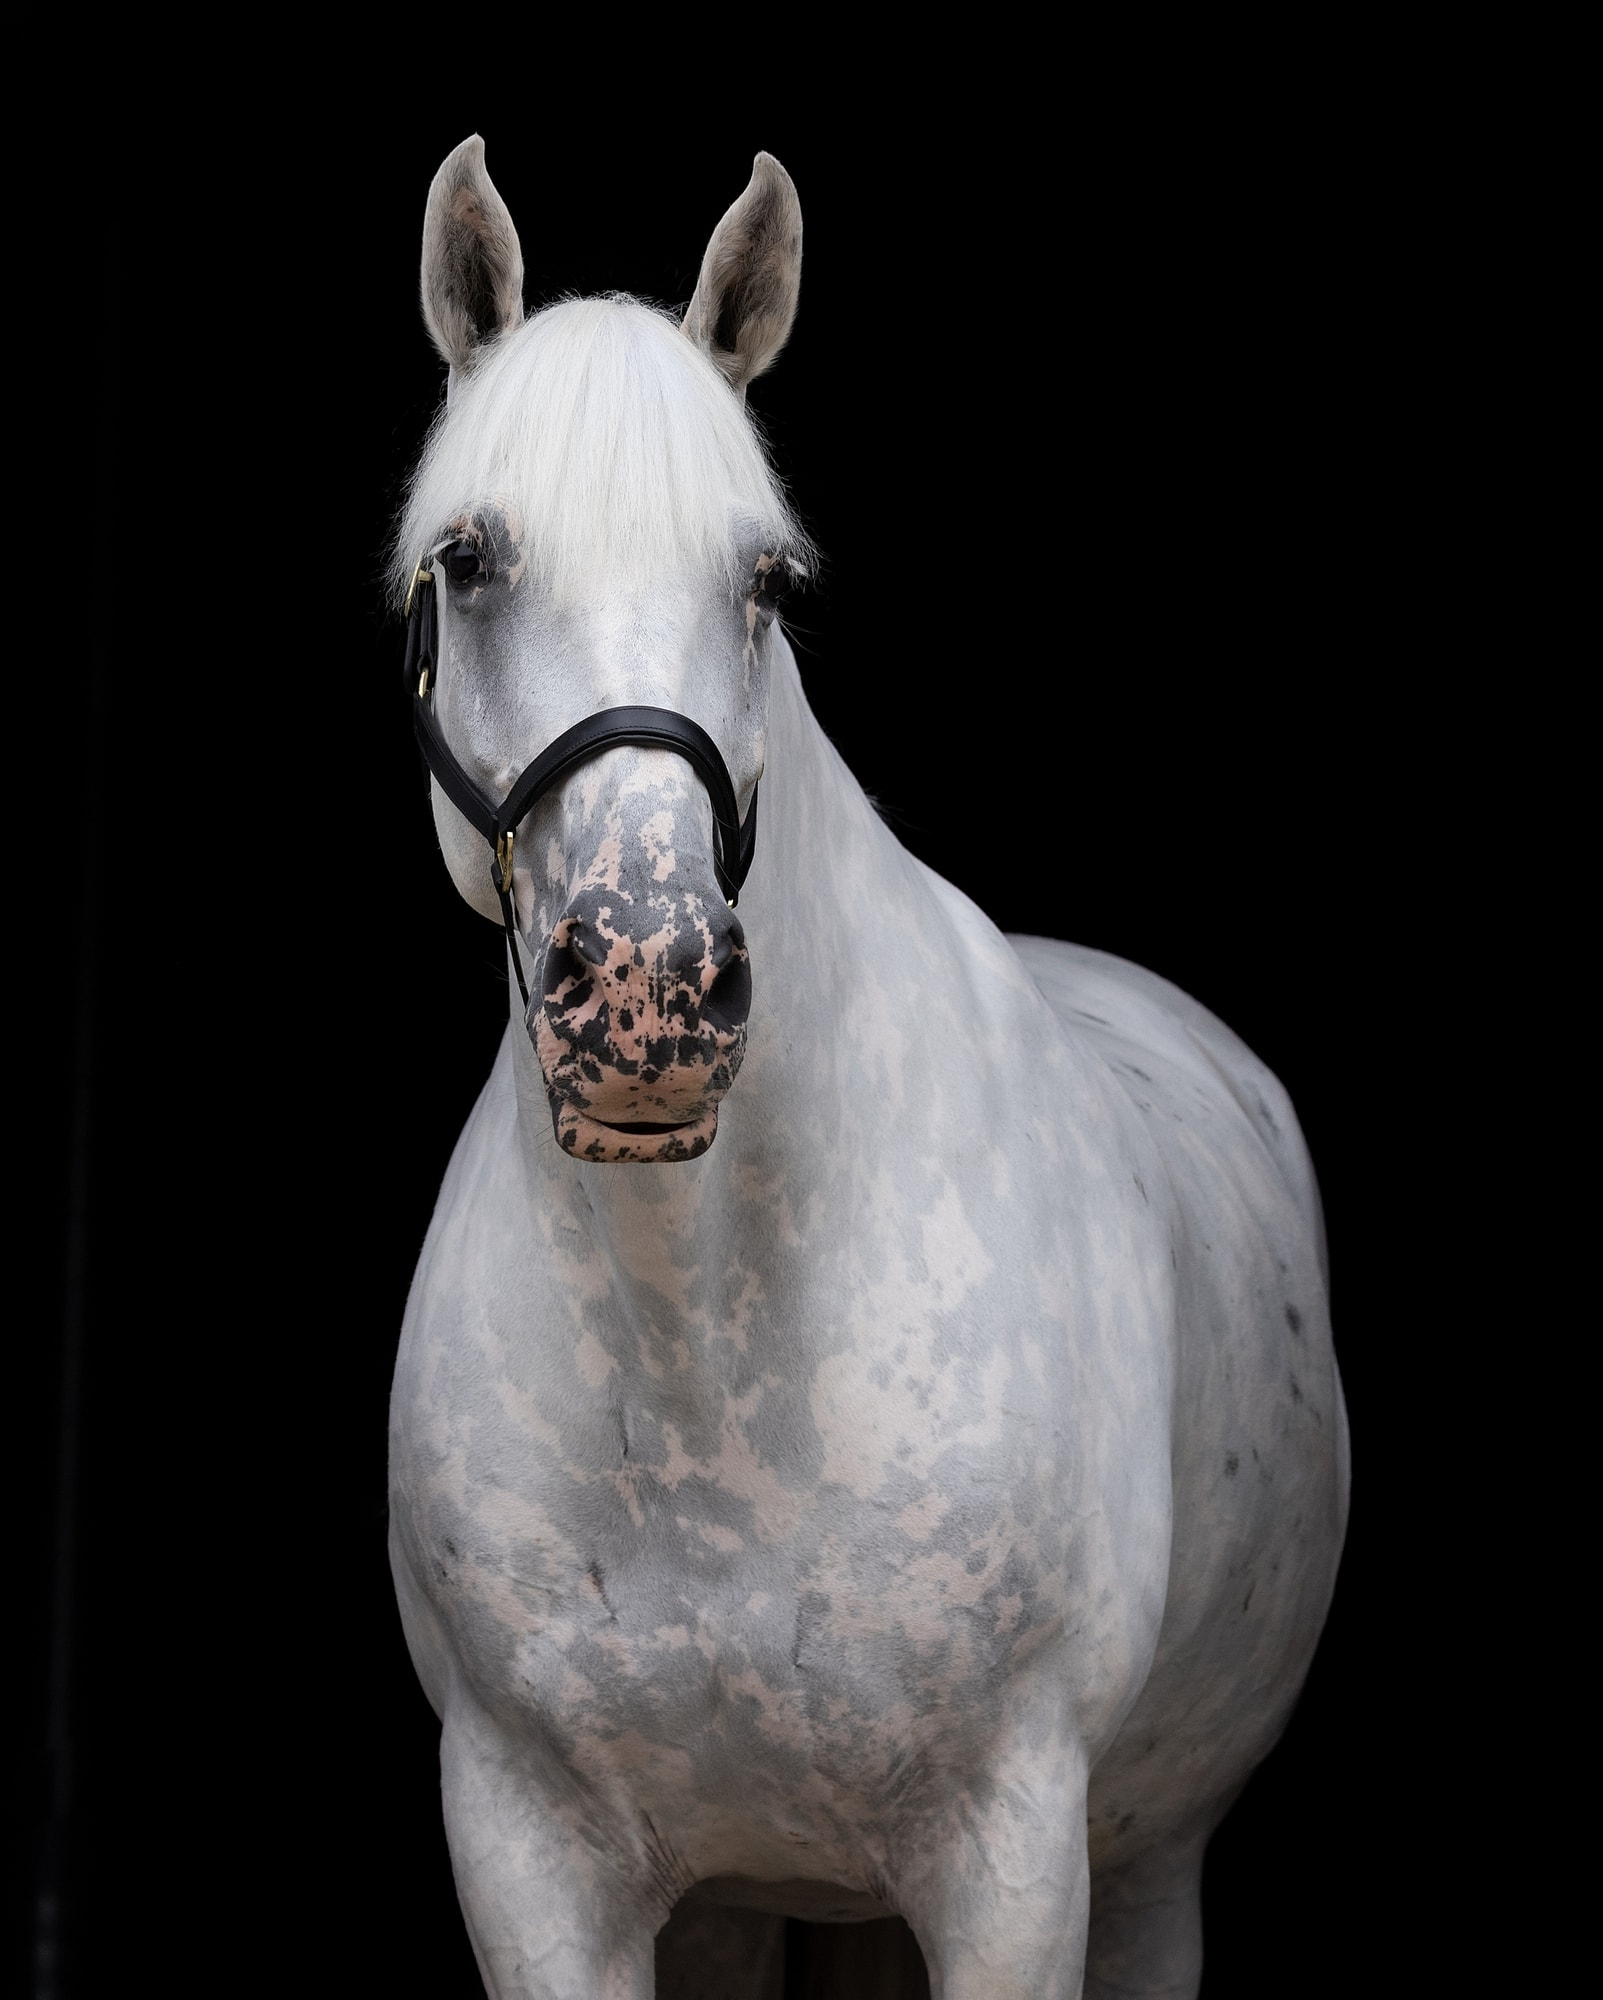 Grey Horse against a Black Background from Horse Photo shoot in Suffolk